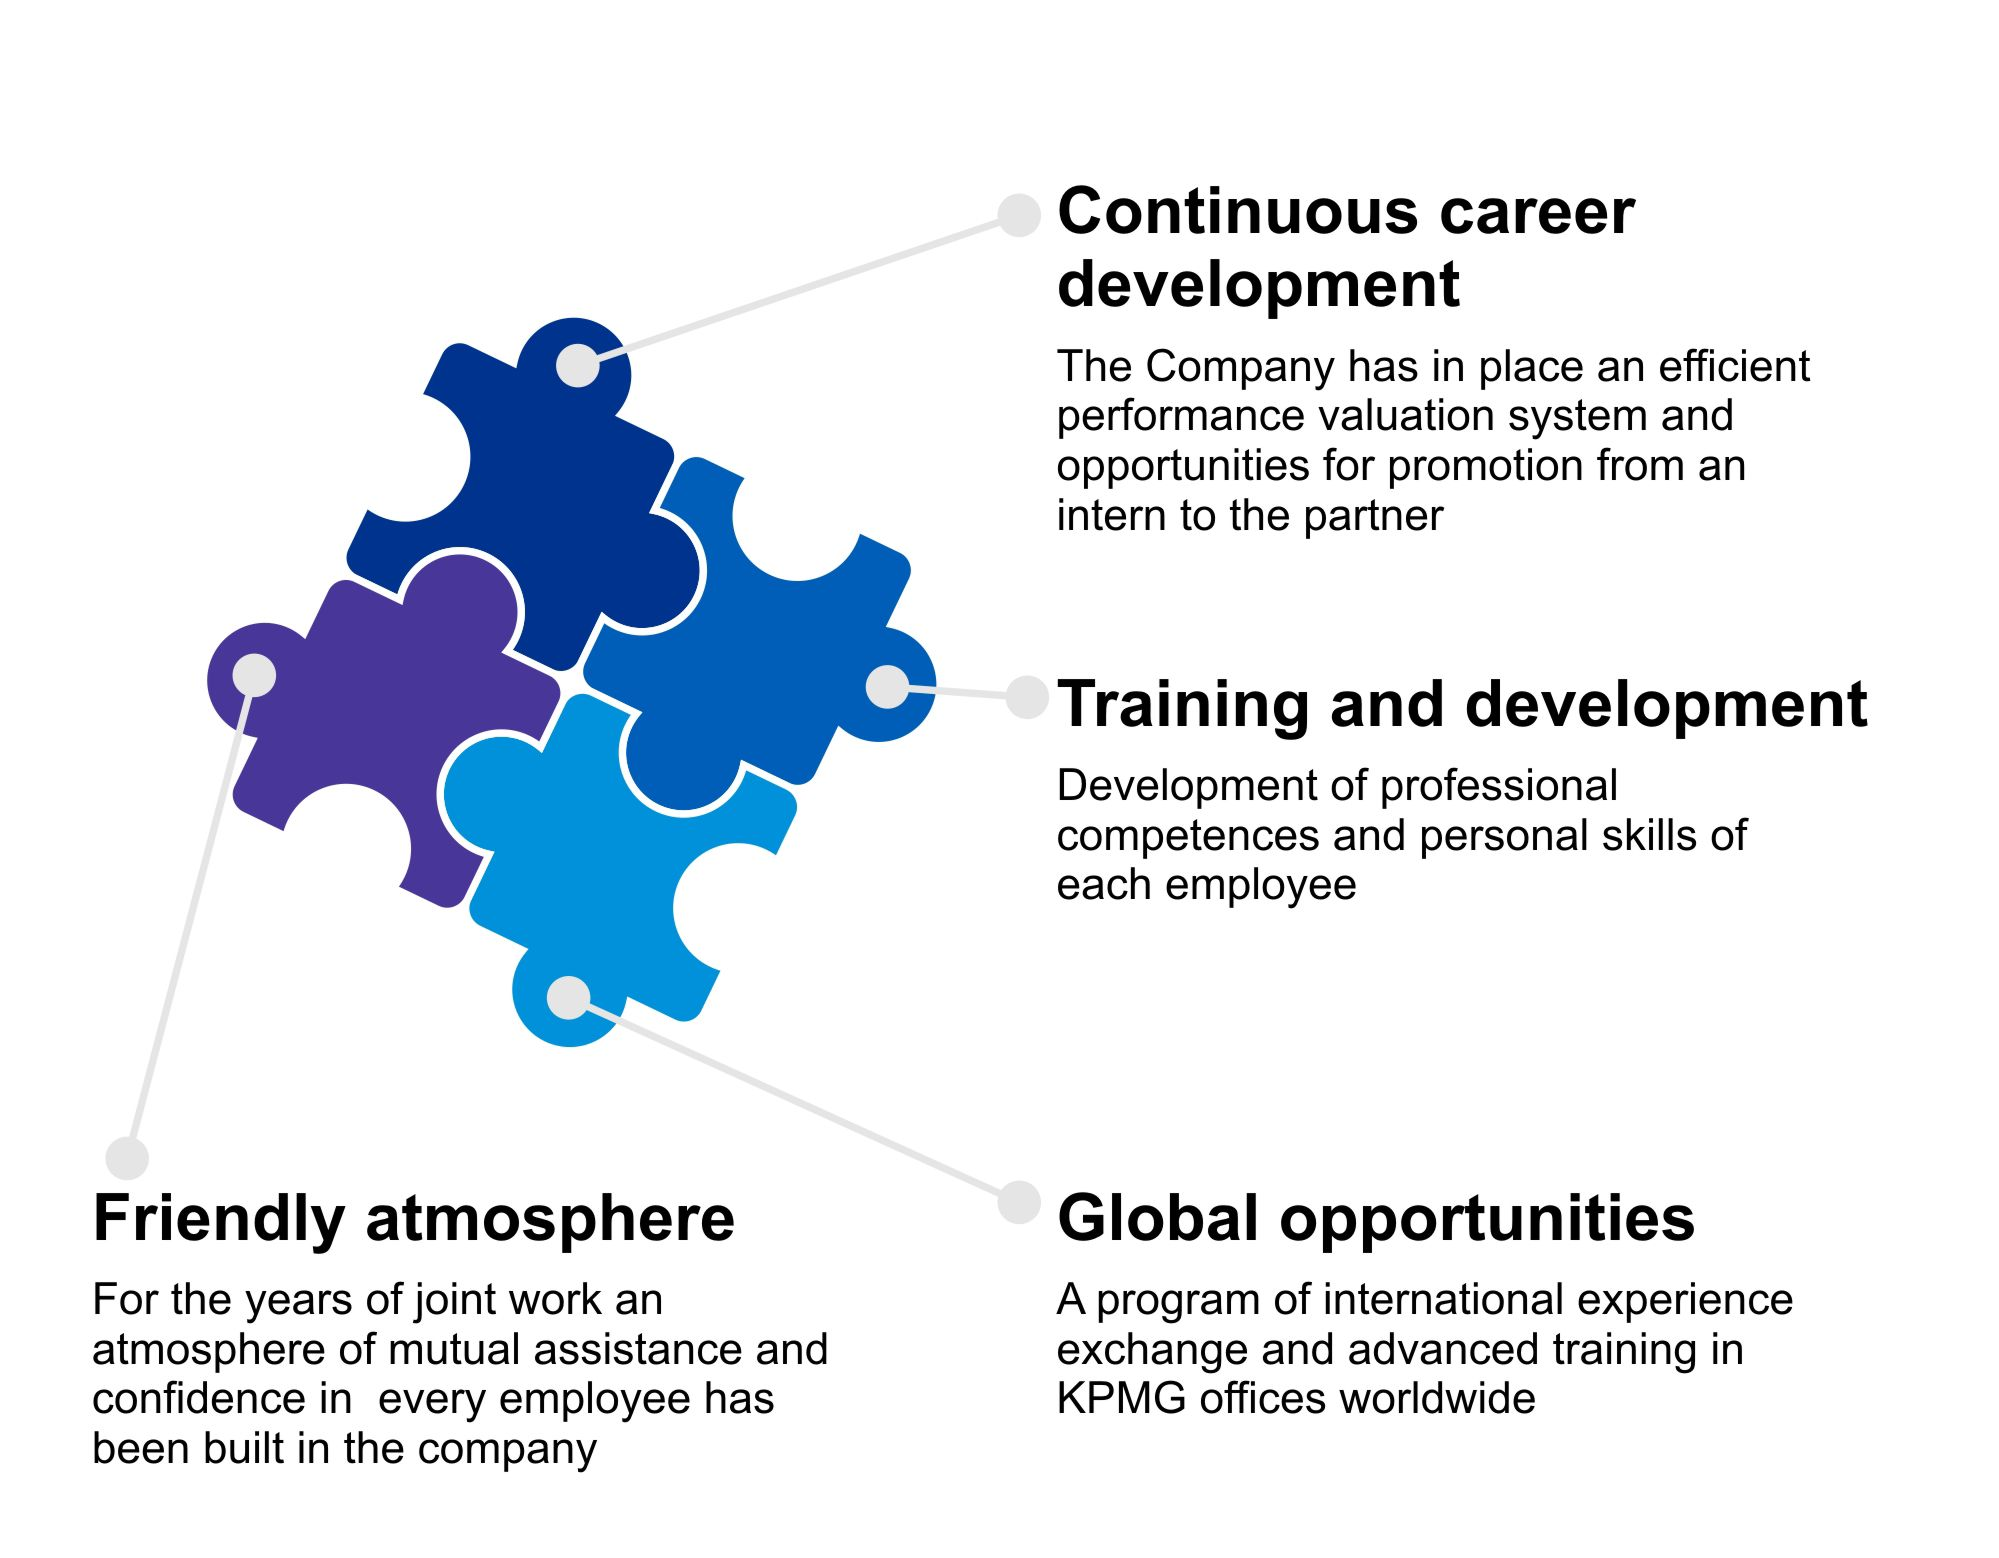 Benefits of working in KPMG: